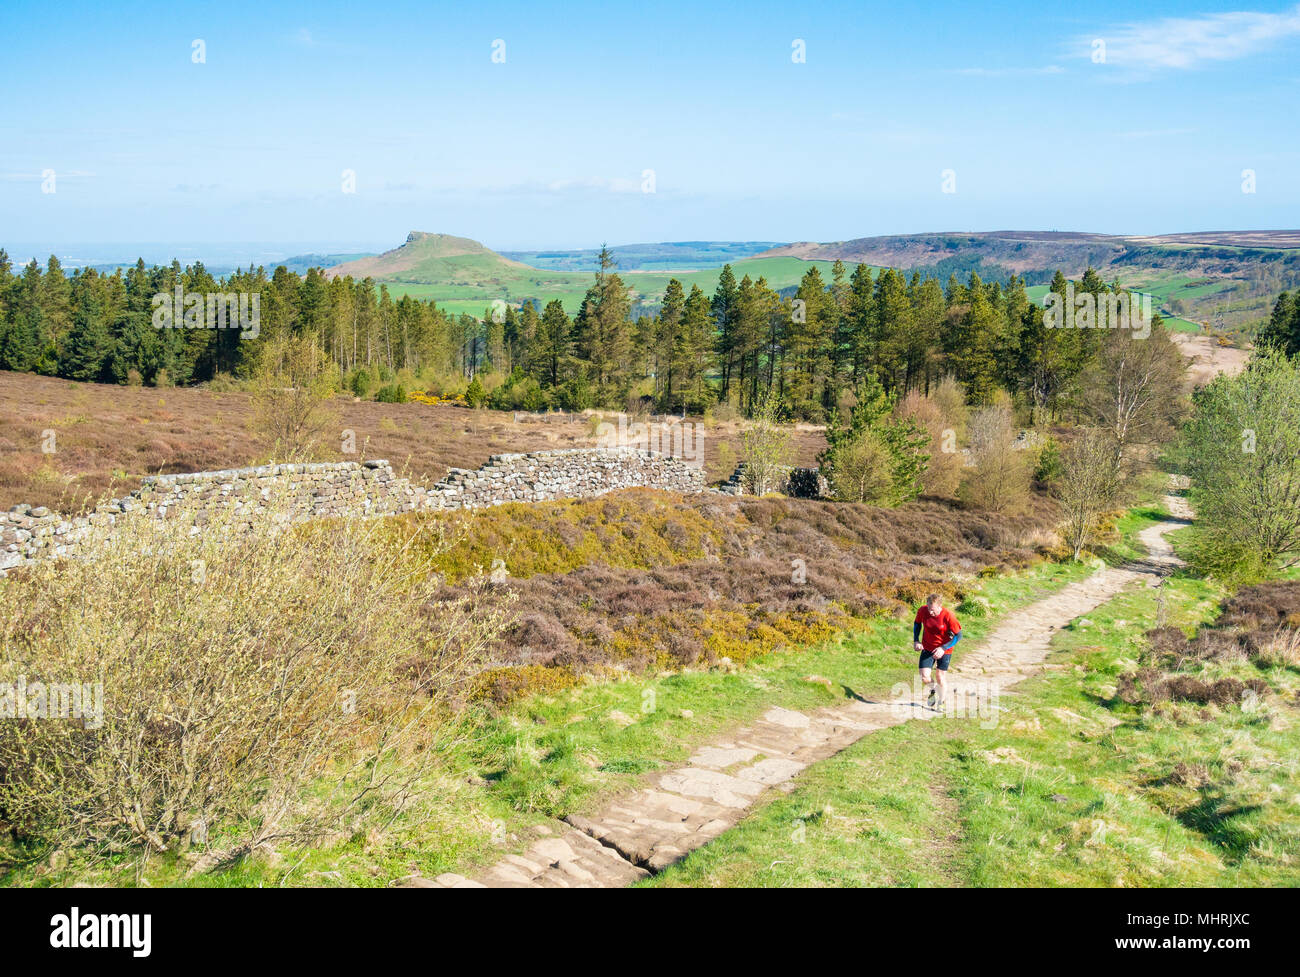 Easby Moor, North York Moors National Park North Yorkshire, England, UK. 3rd May, 2018. Weather: Glorious sunshine in North Yorkshire.  Runner heading up to Captain Cook`s monument on Easby Moor, with Roseberry Topping in distance (also dubbed the Yorkshire Matterhorn due to its similar shape). 2018 marks the 250th anniversary of Captain Cook`s first Pacific voyage, with events planned nationwide to commemorate the event. Credit: ALAN DAWSON/Alamy Live News - Stock Image